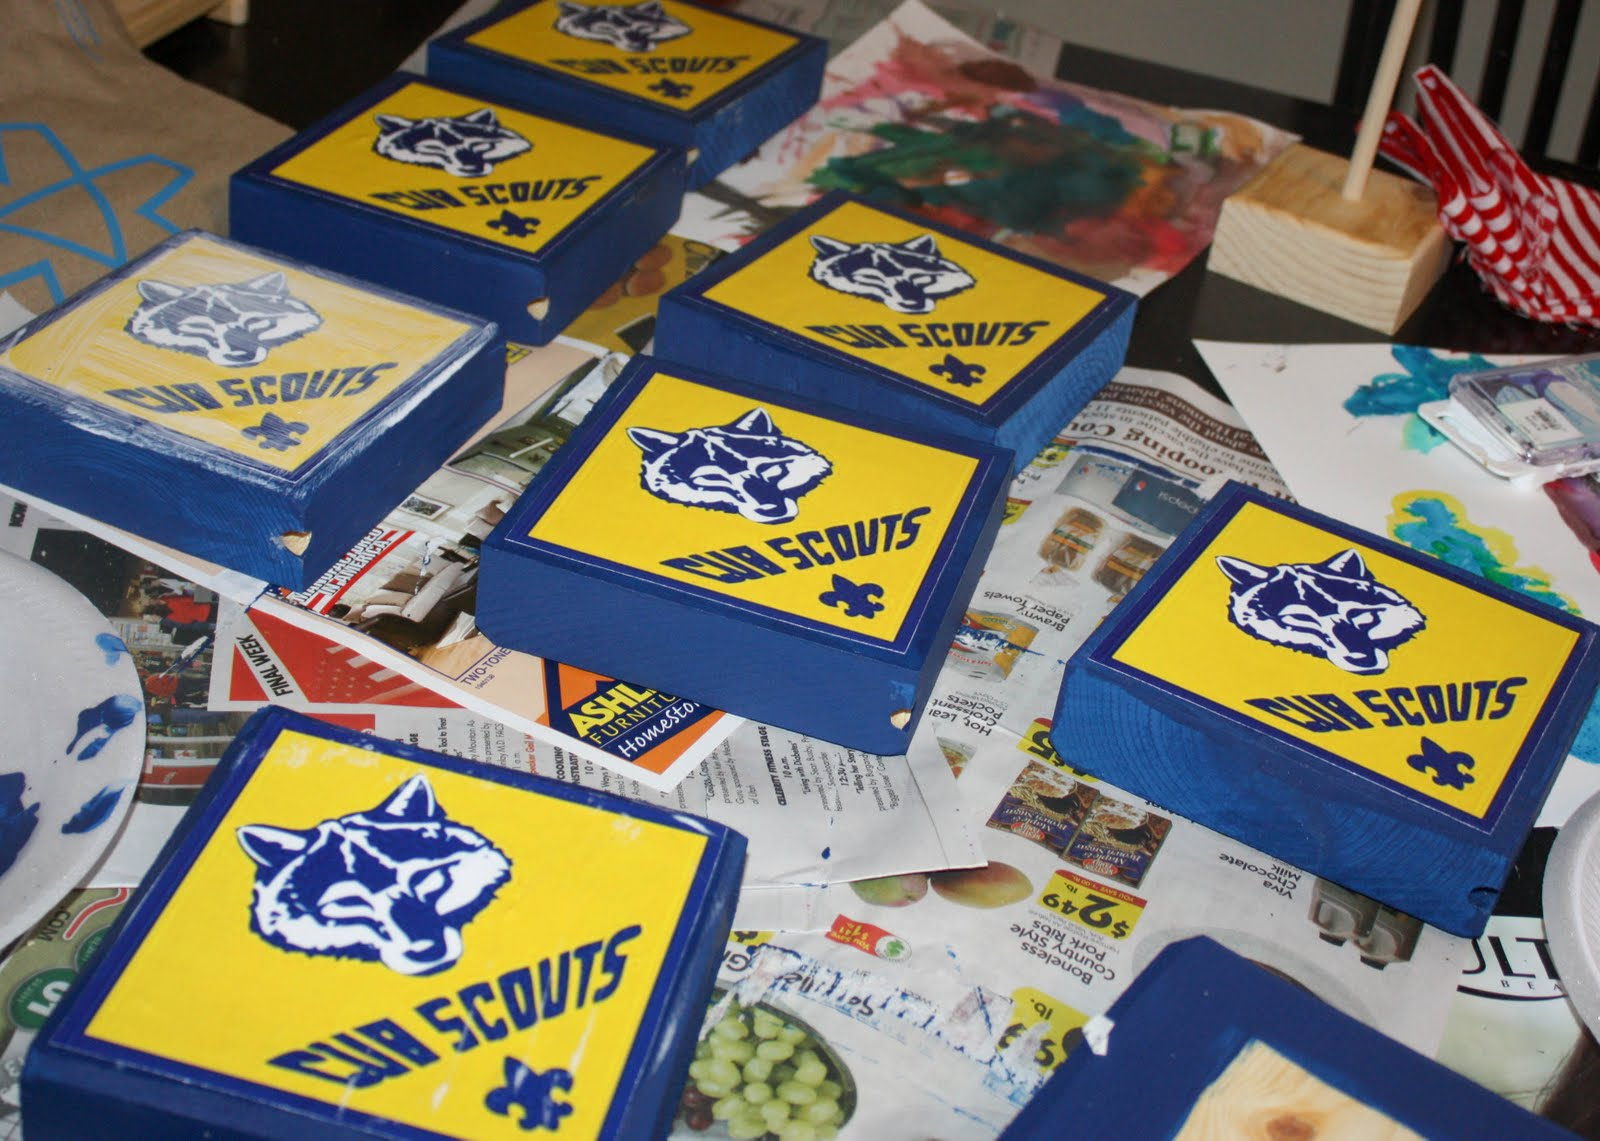 Cub Scout Blue and Gold Banquet Centerpieces